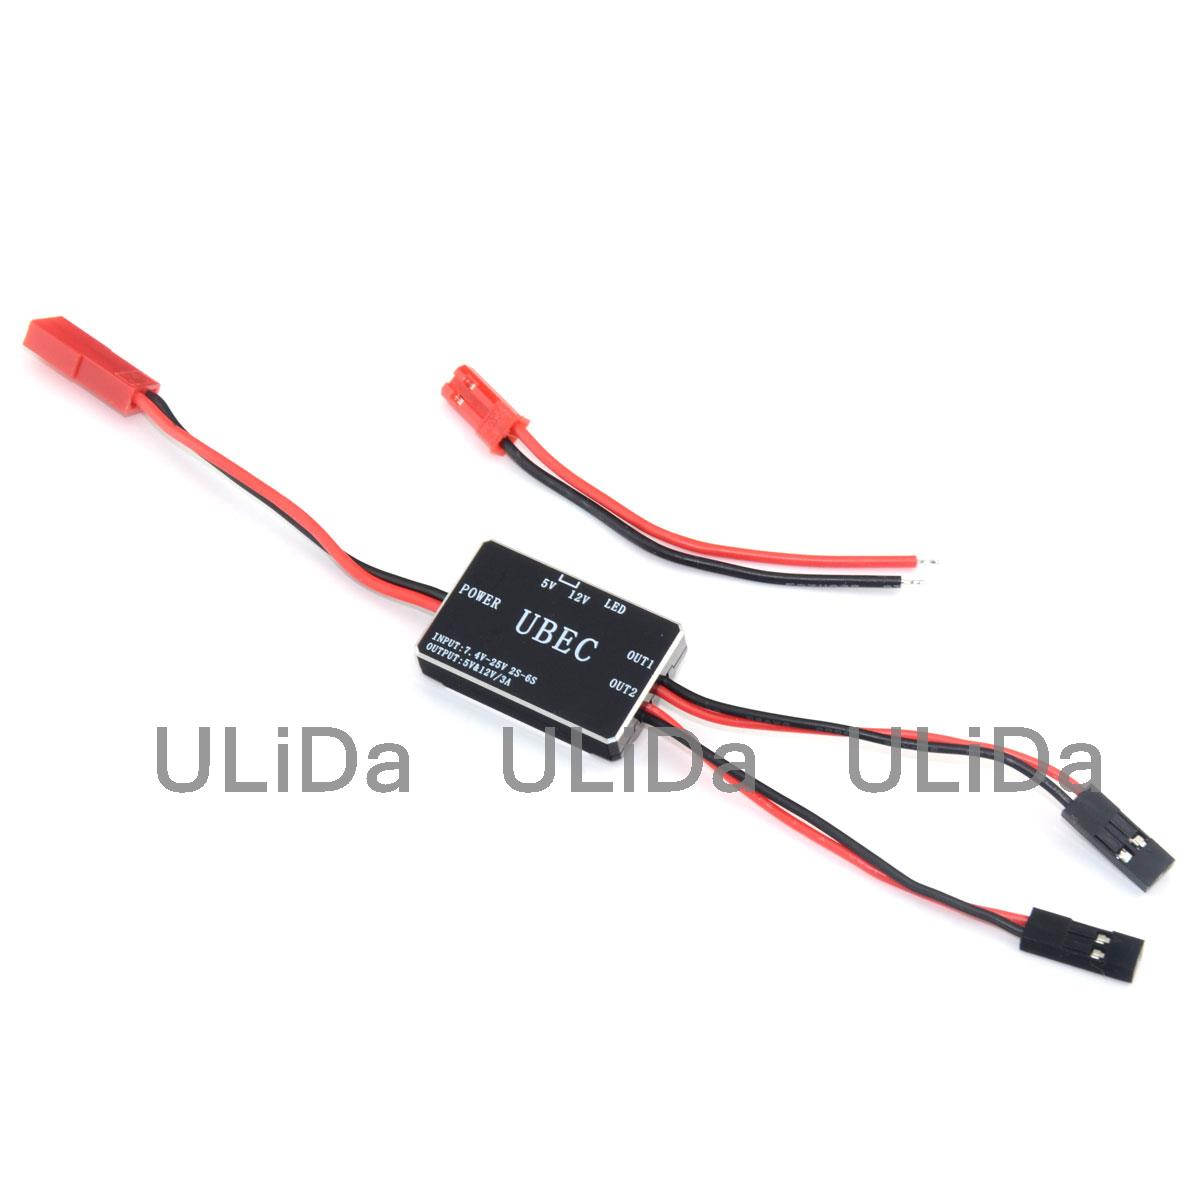 Aliexpress Buy 2in1 5v 12v 3a Ubec Dc Dc Buck Power